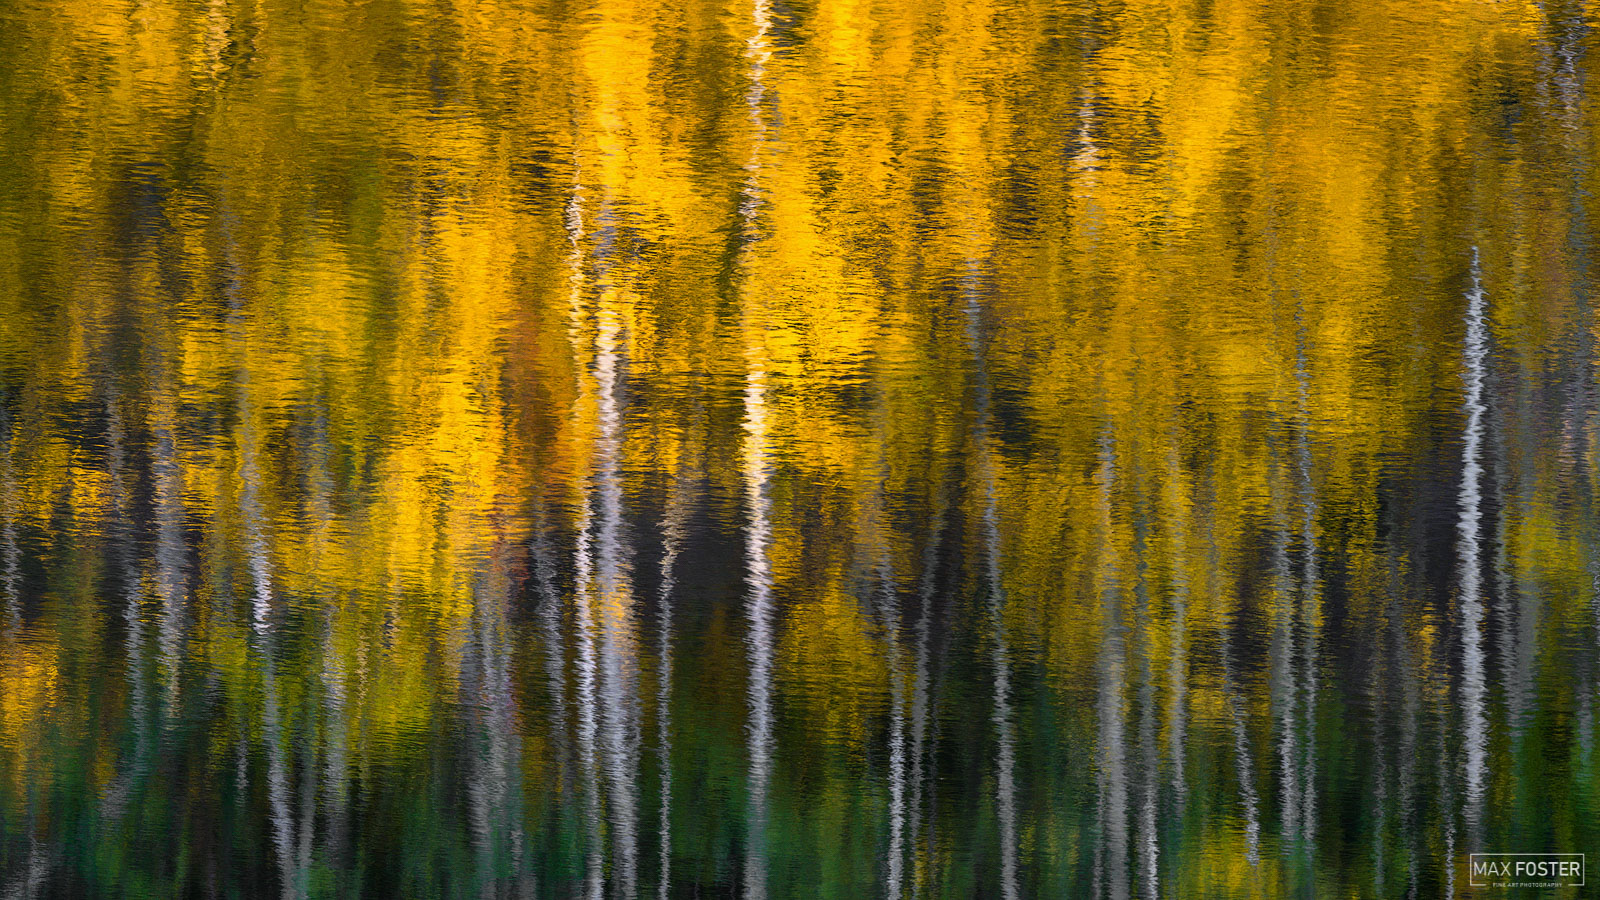 Fine Art Limited Edition of 50 Aspen trees typically grow in environments that are otherwise dominated by coniferous tree species...